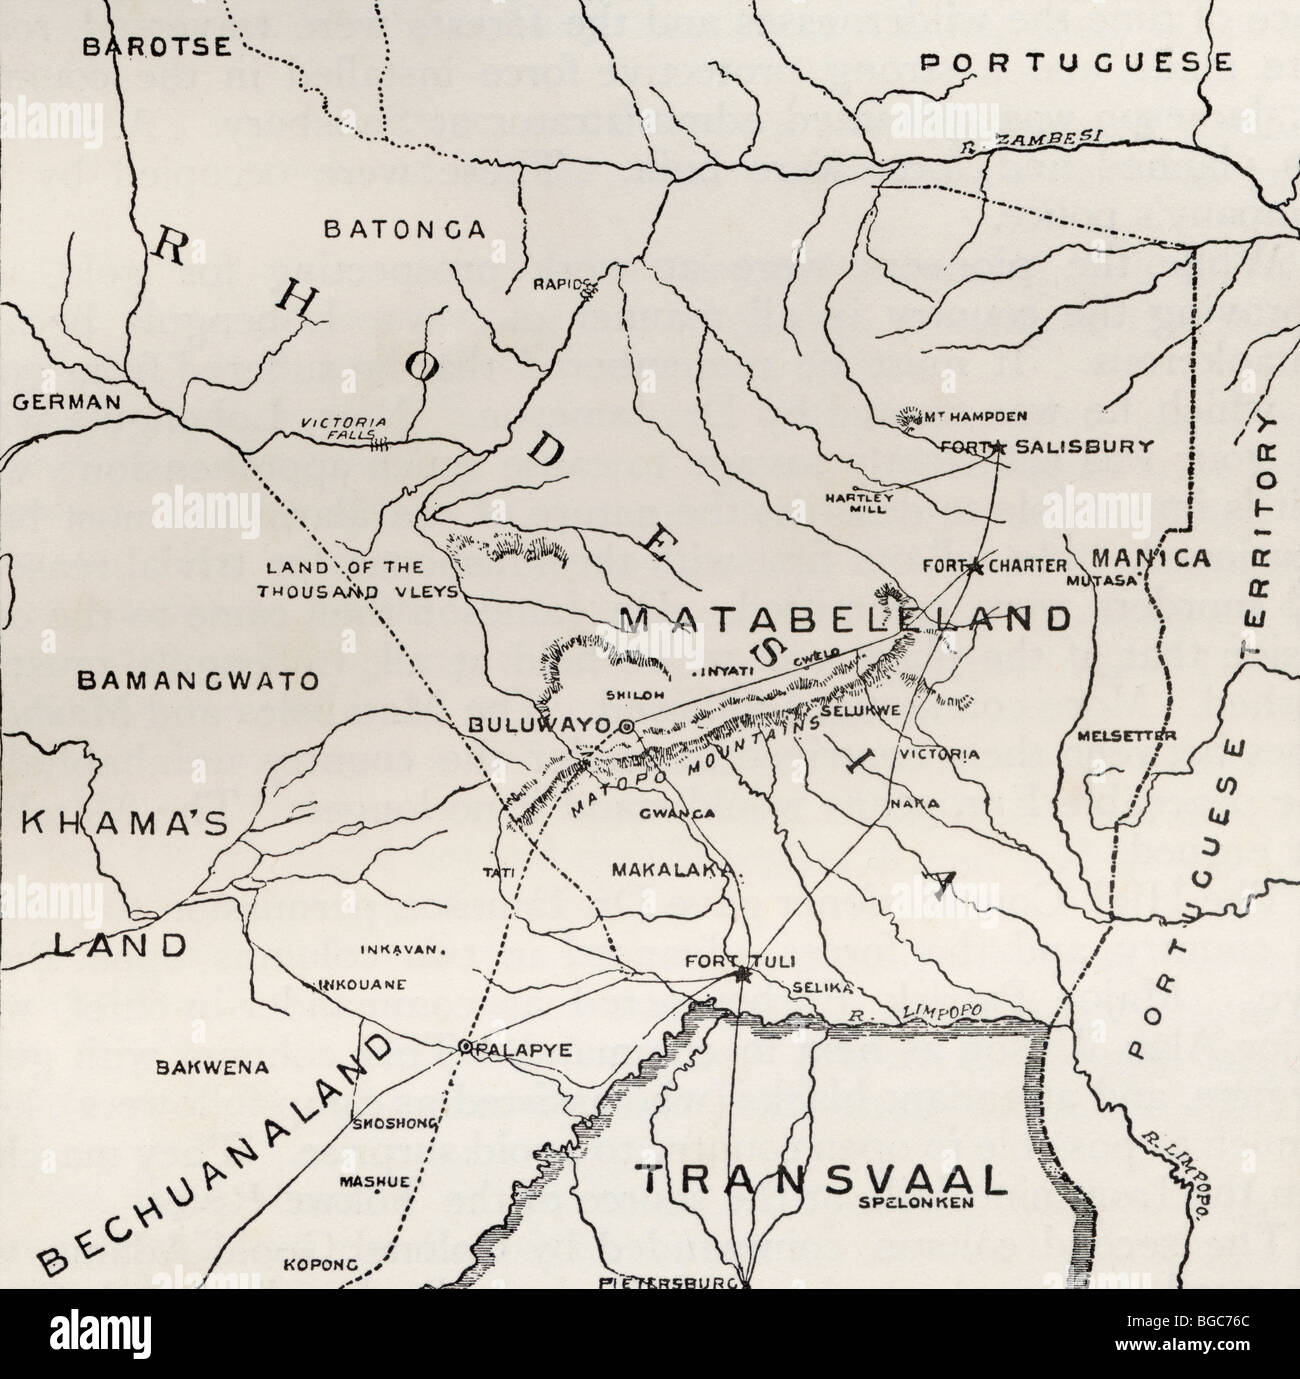 Map of Matabeleland in the late 19th century. - Stock Image